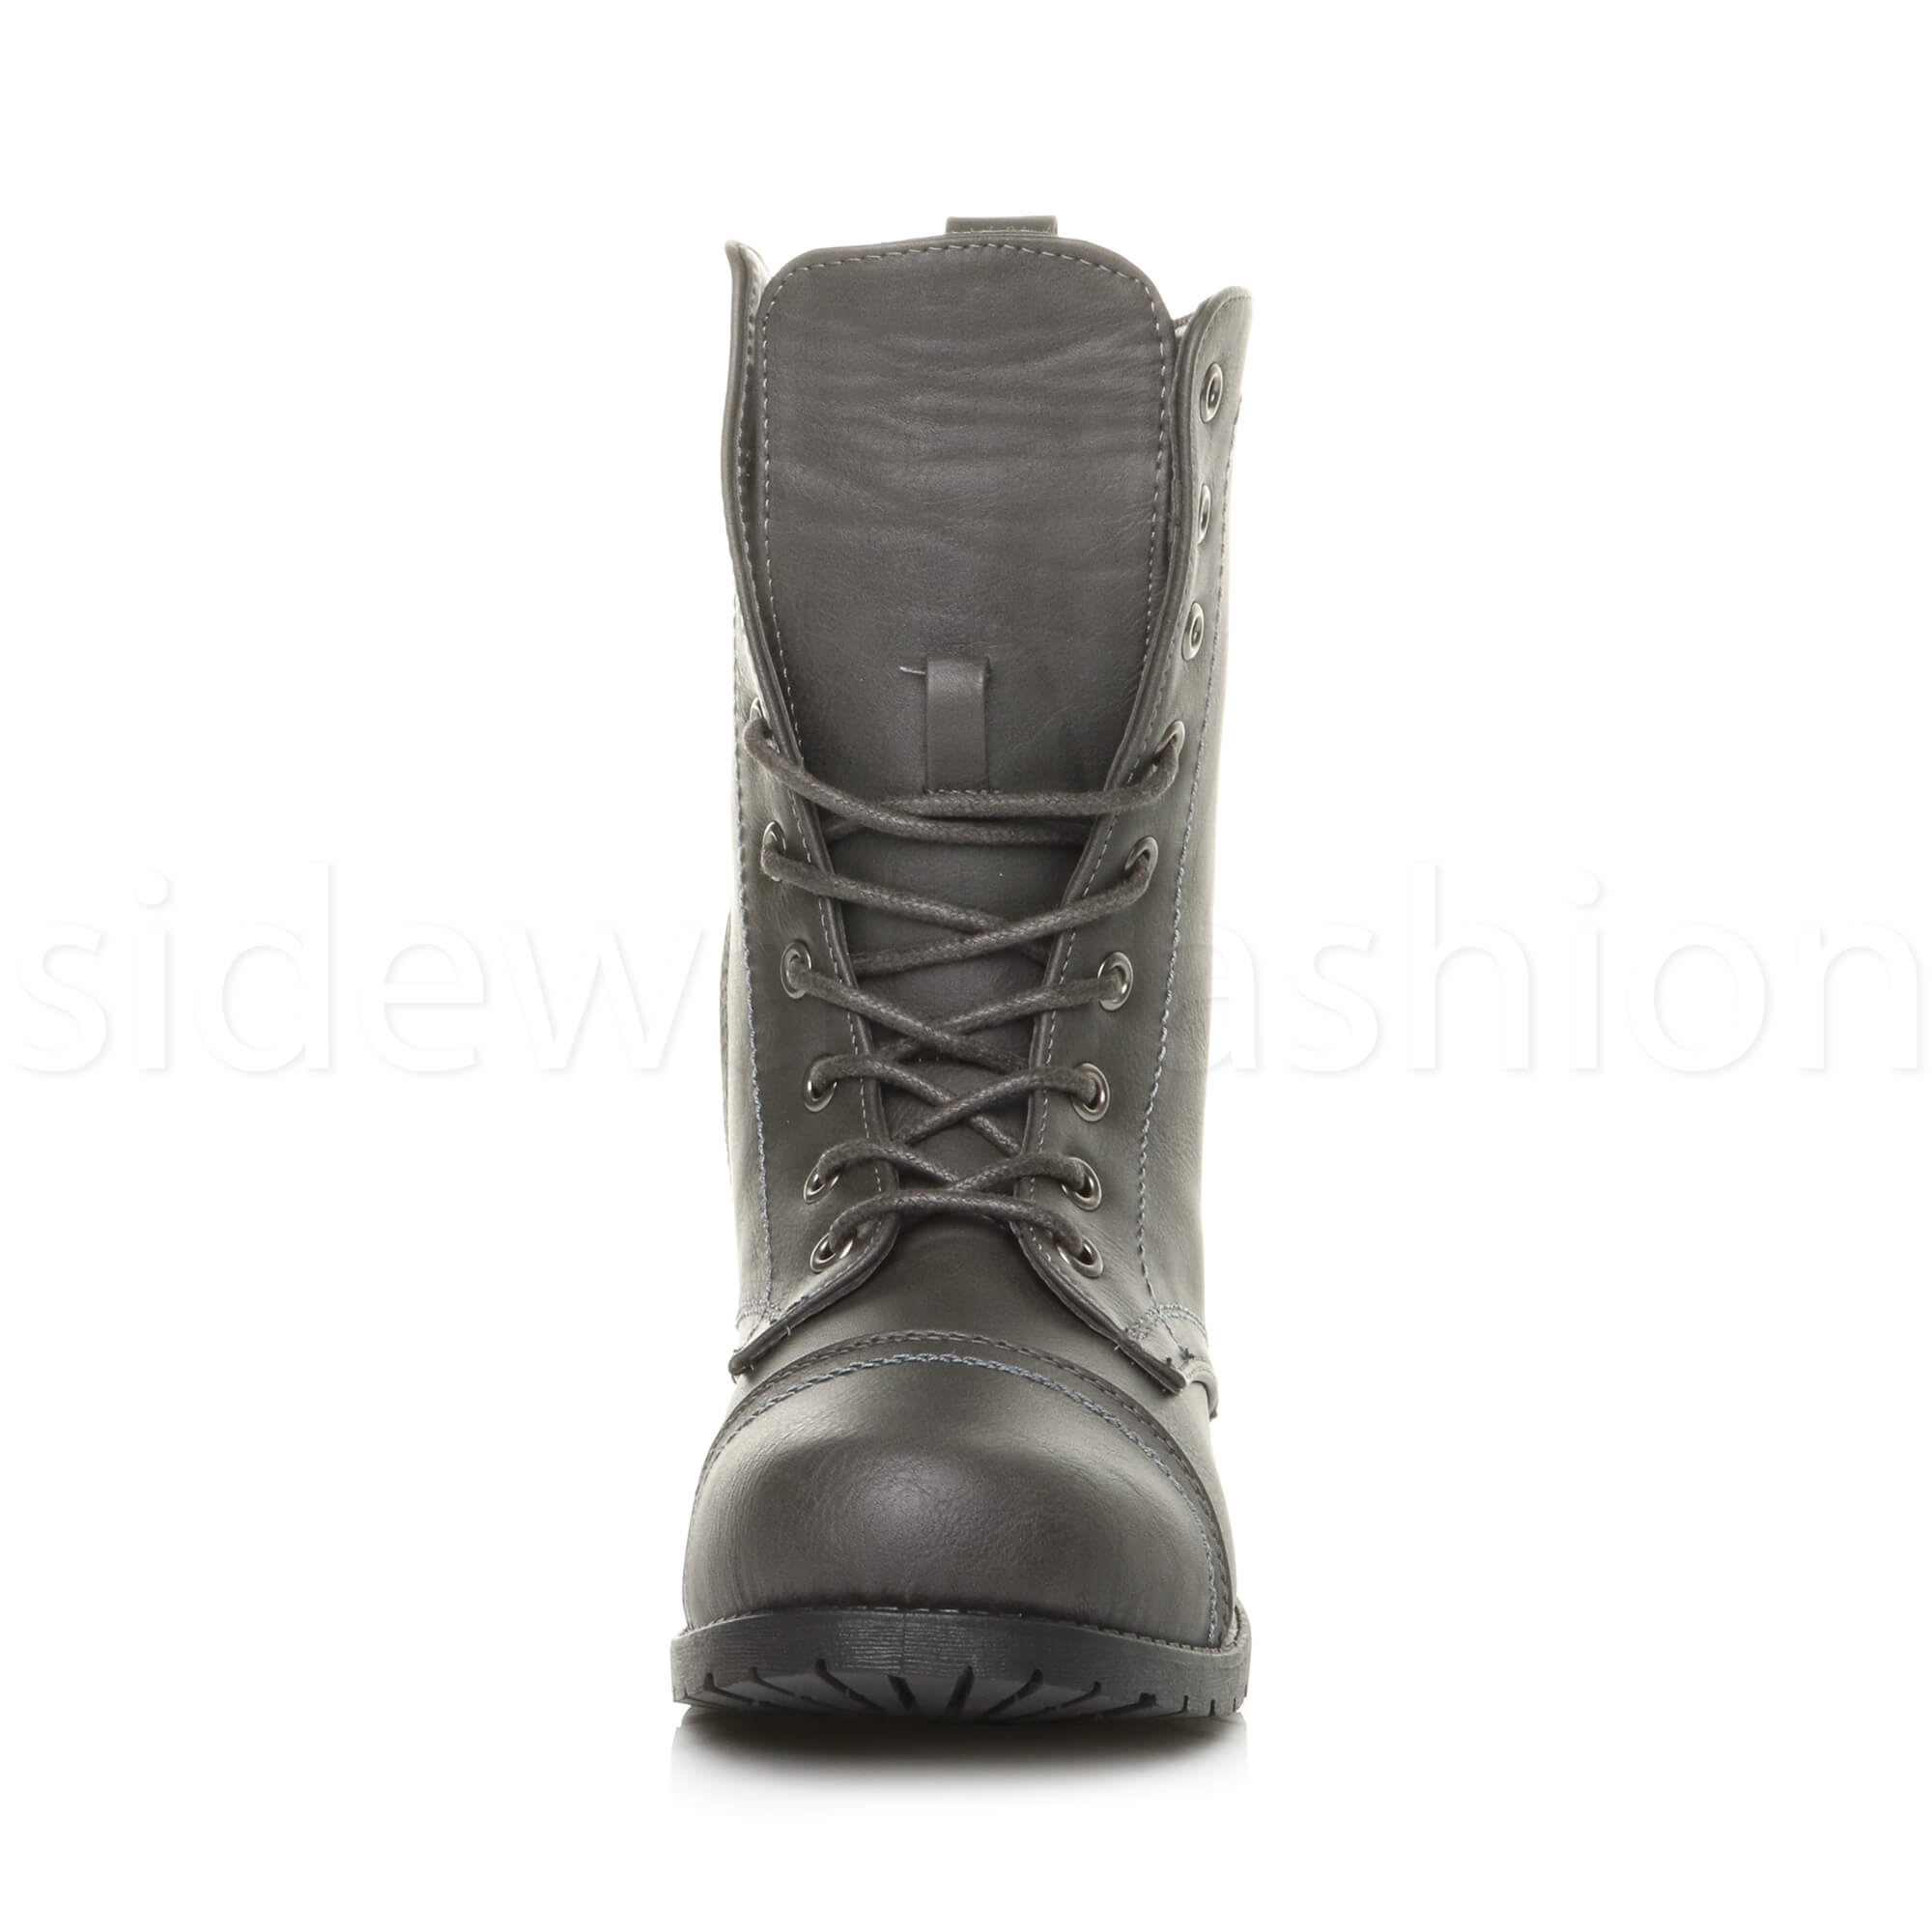 Womens-ladies-low-heel-flat-lace-up-zip-combat-biker-military-ankle-boots-size thumbnail 87